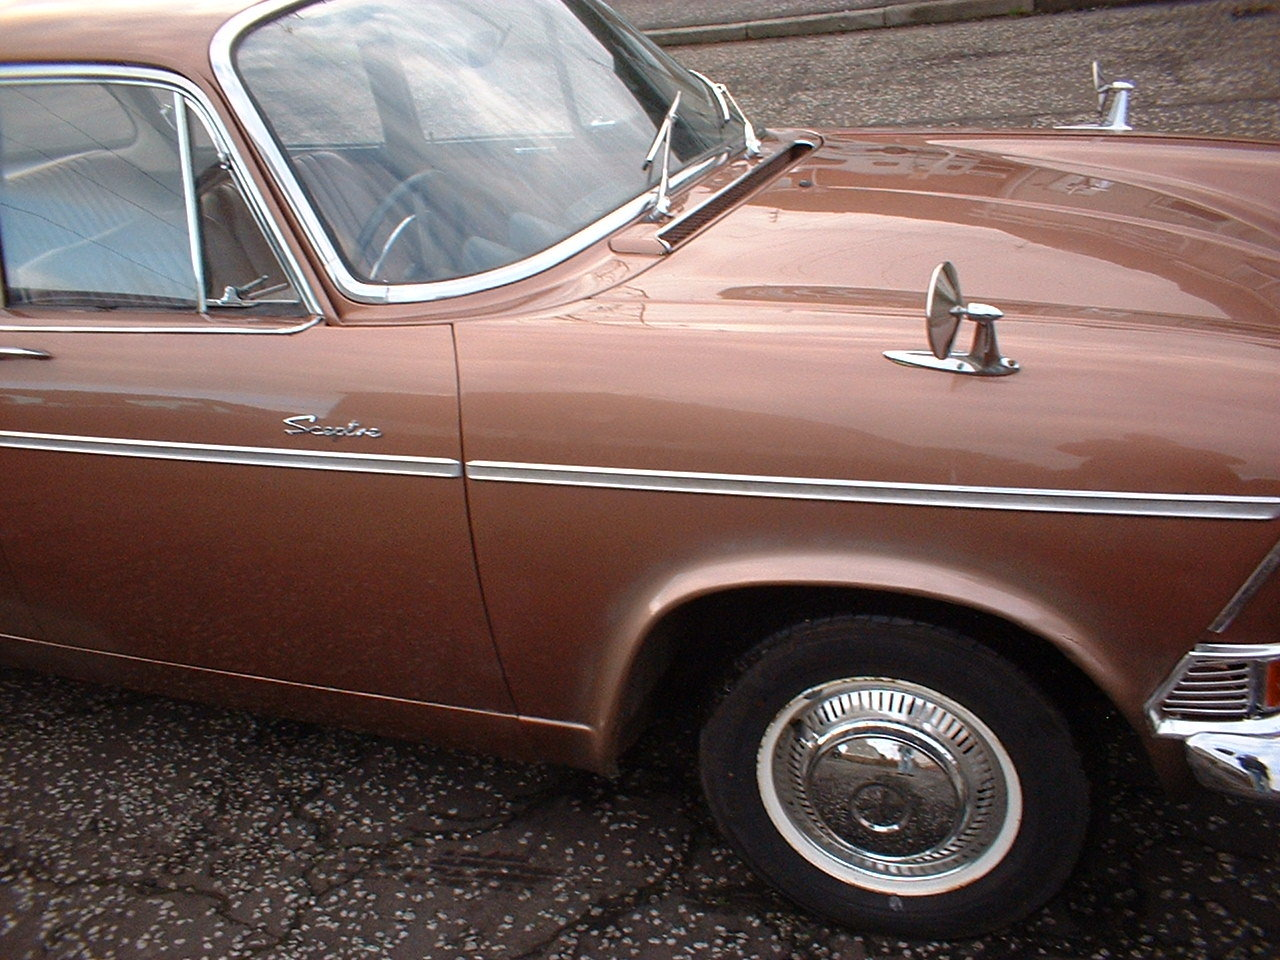 1965 Humber Mk1 Sceptre  SOLD (picture 2 of 2)